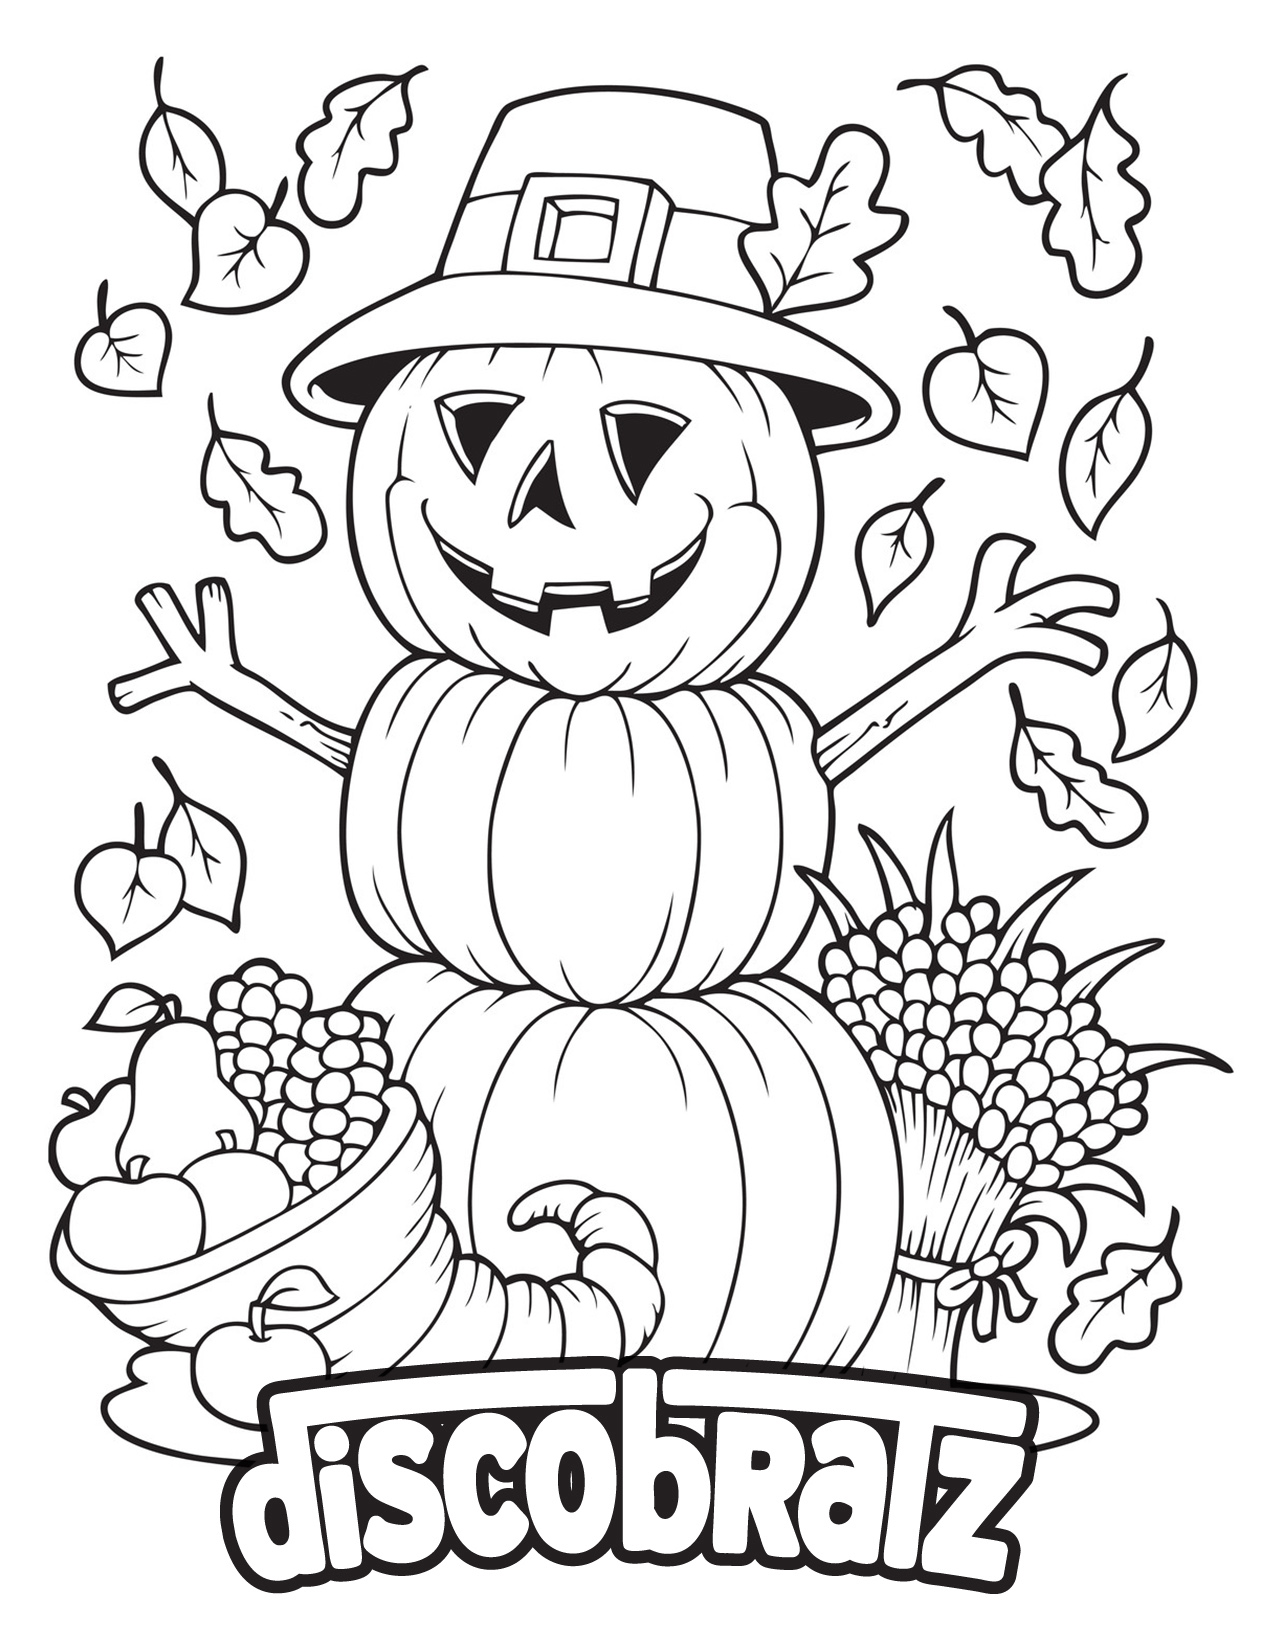 All Hallow's Eve Brings Another Coloring Page from the